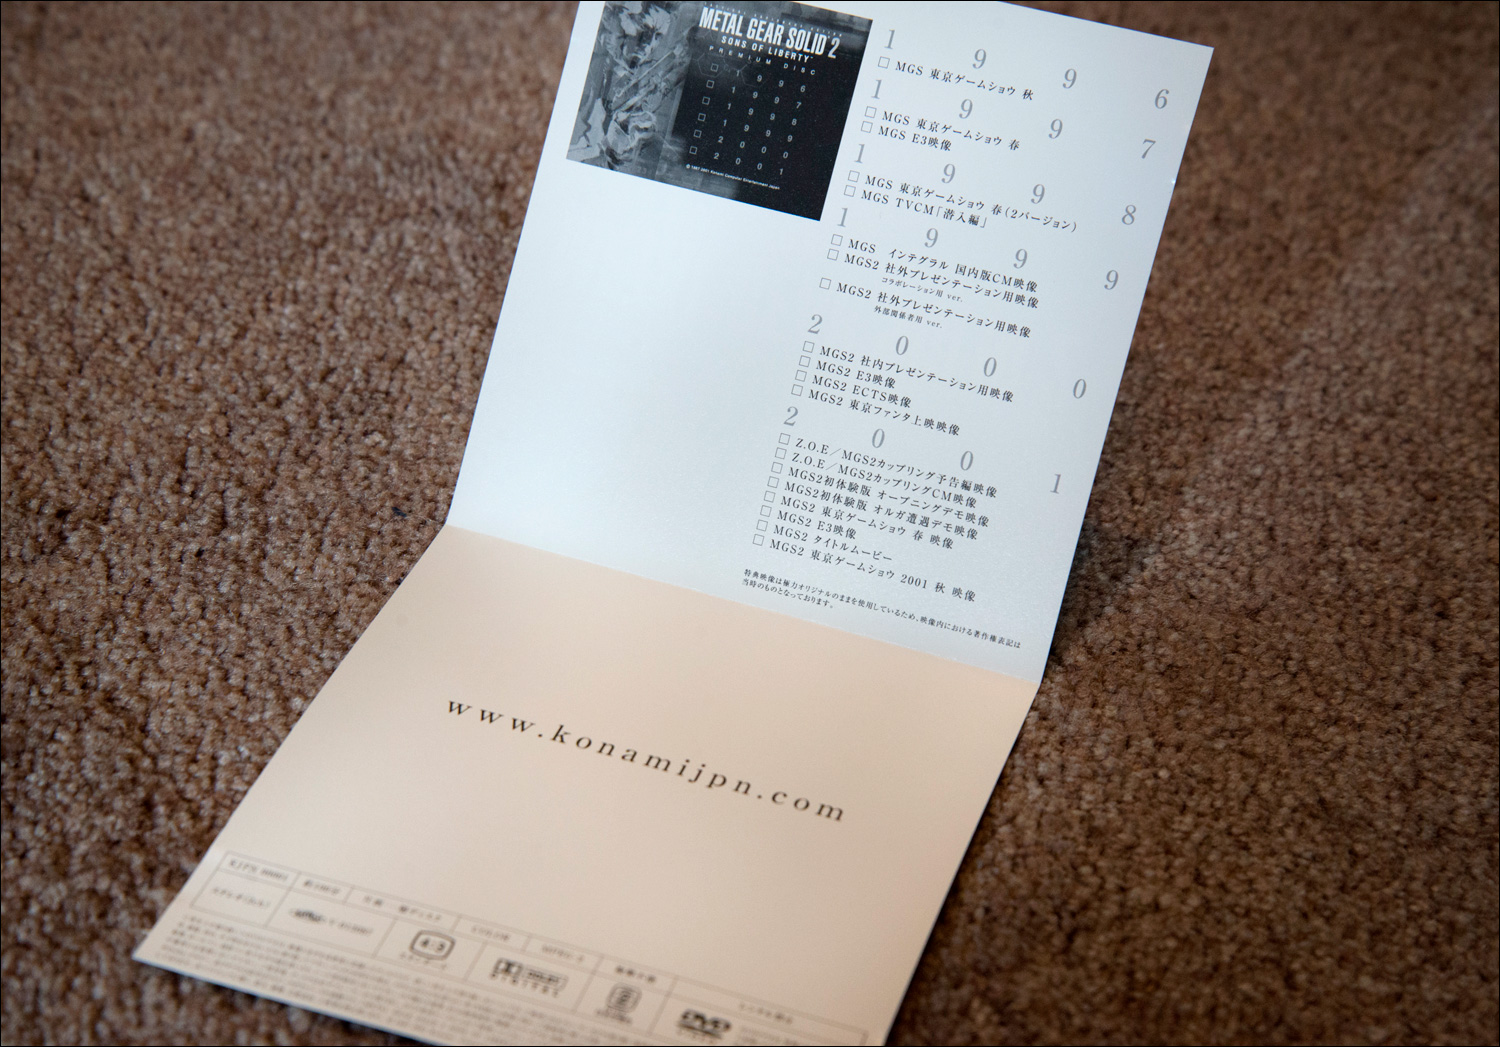 Metal-Gear-Solid-2-Sons-of-Liberty-Premium-Package-DVD-Booklet